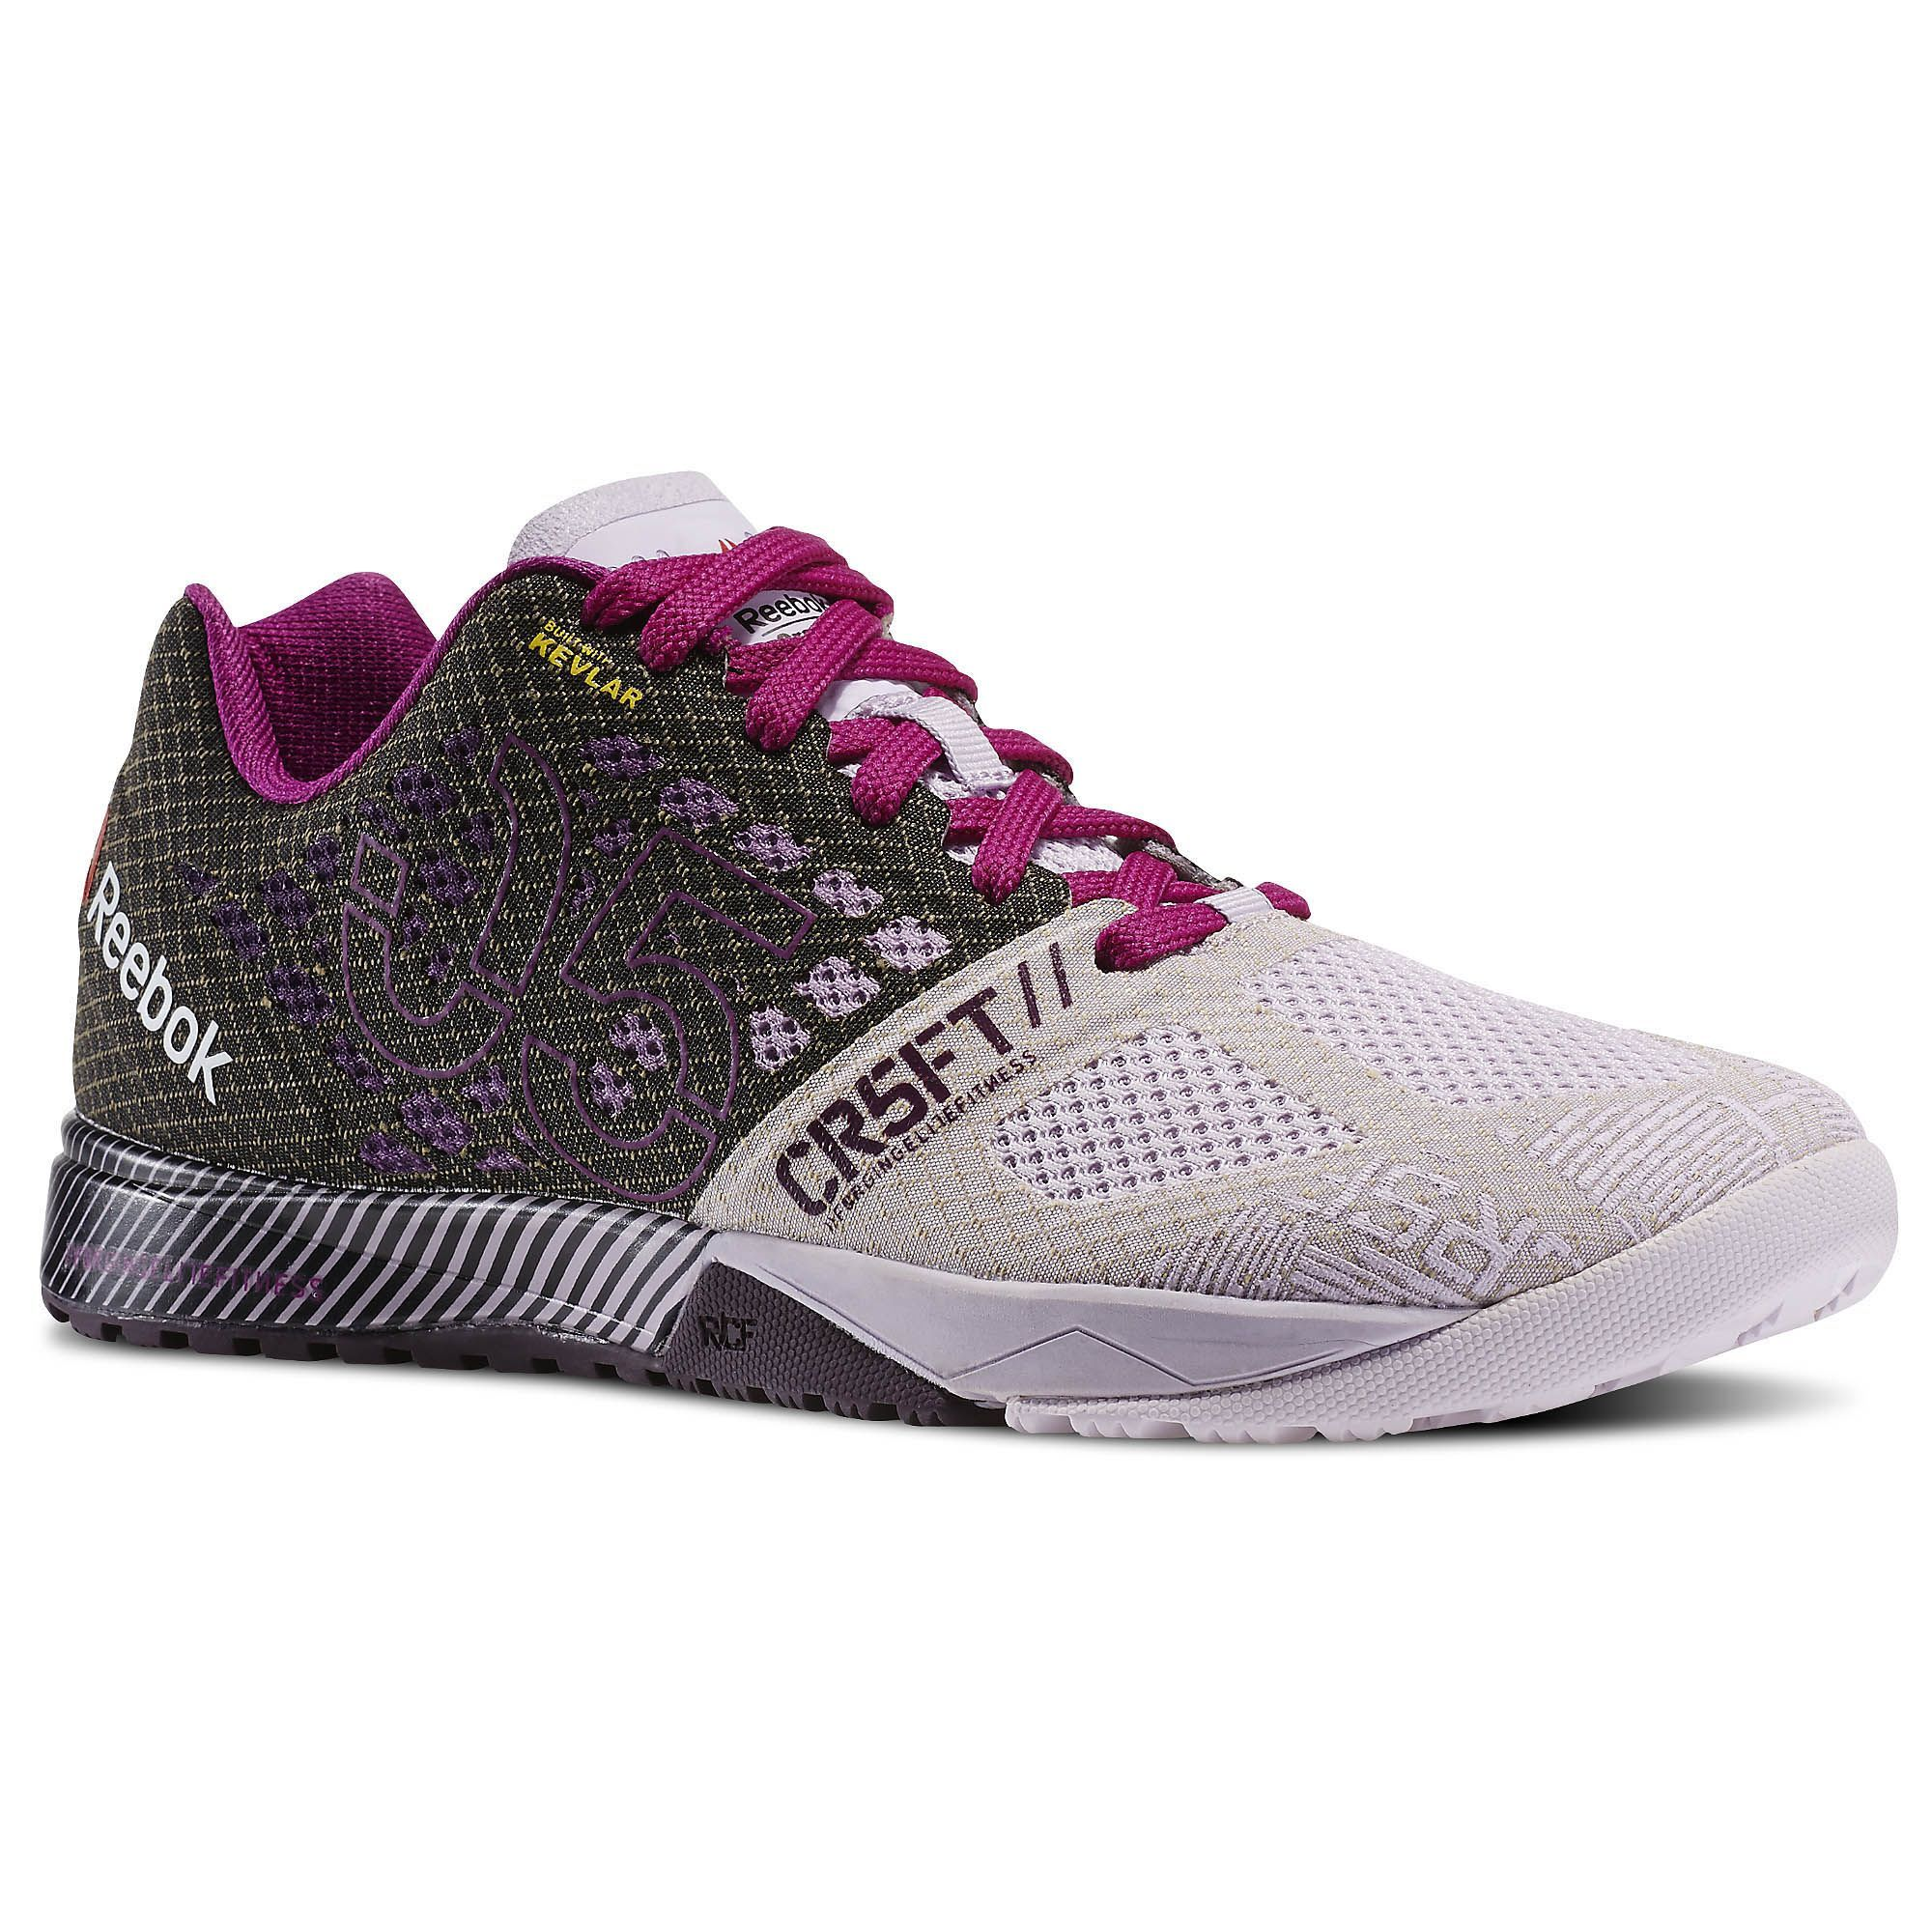 5 0Shoes Nano Reebok Crossfit erdoWBCx